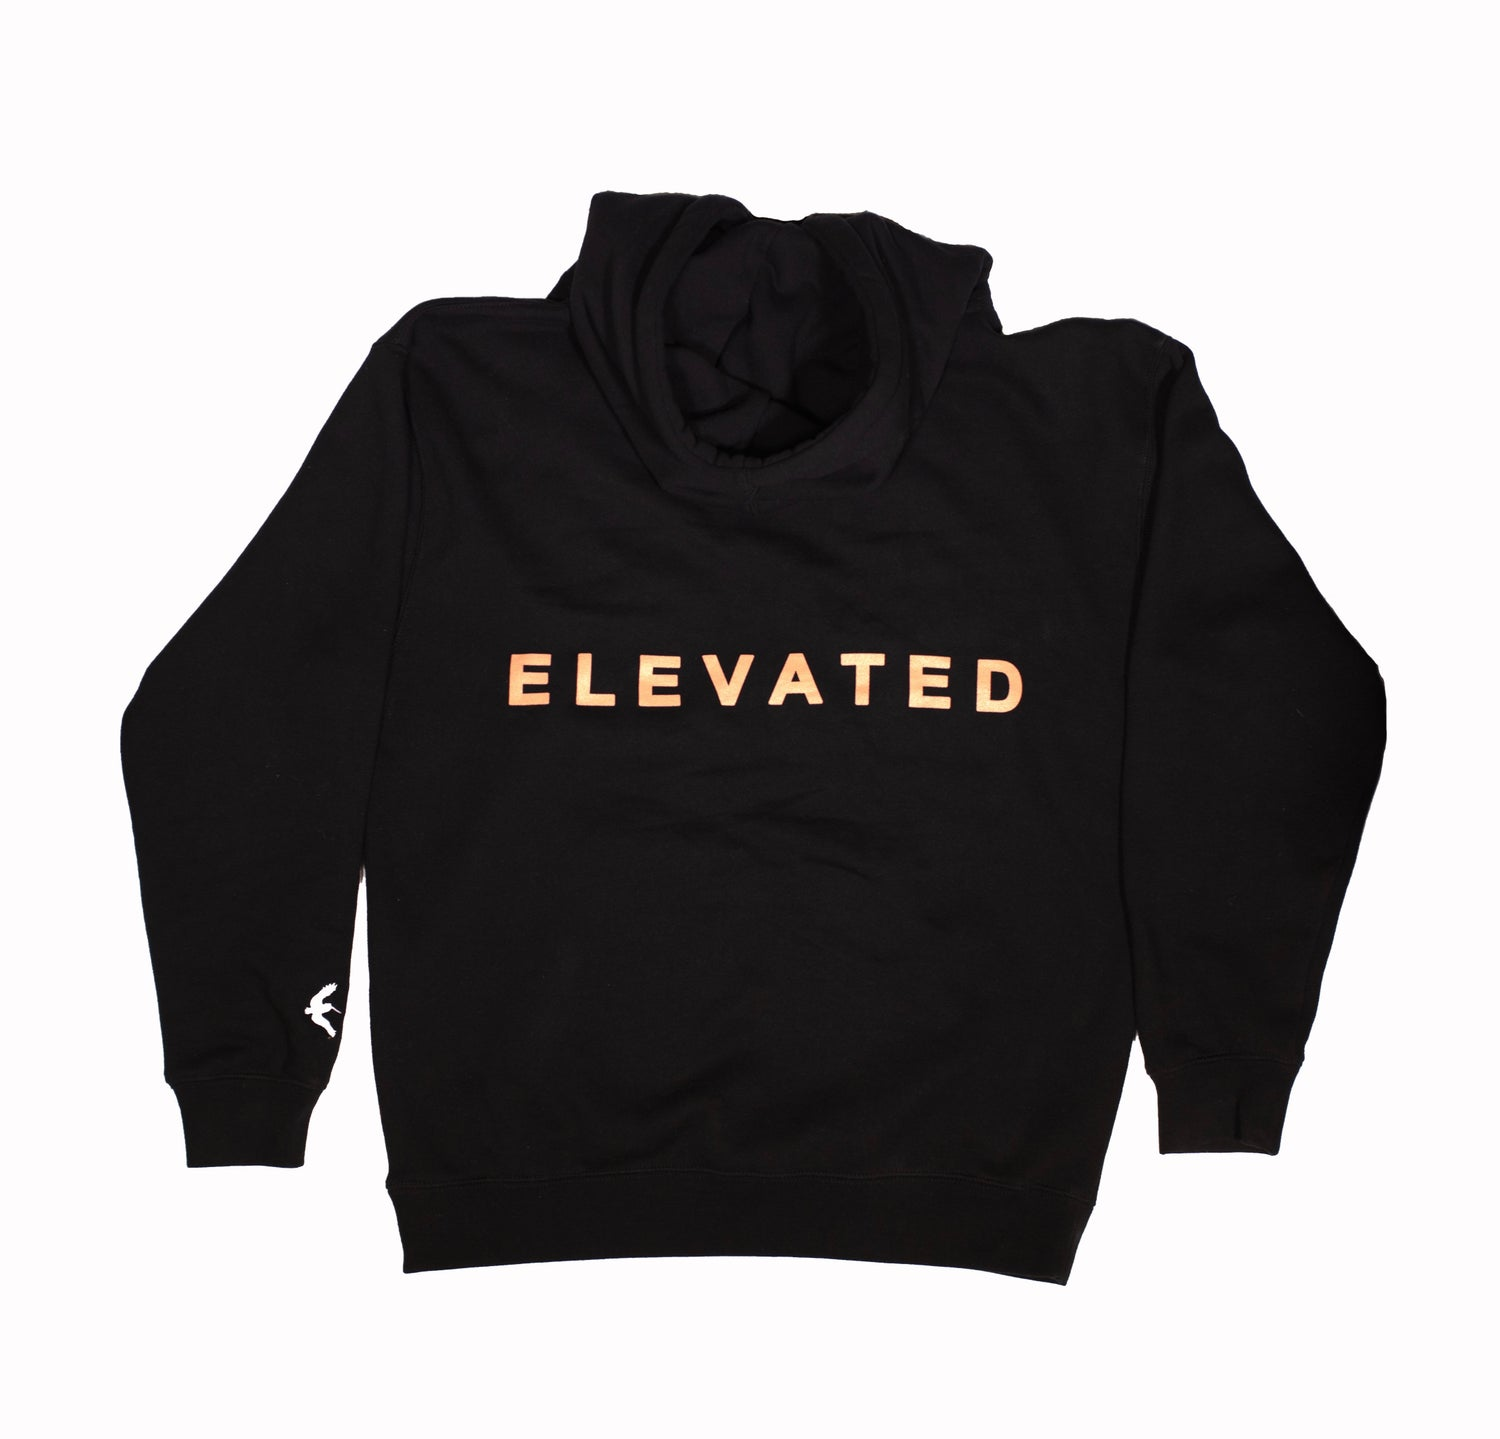 Image of IX|LX ELEVATED Hoodie